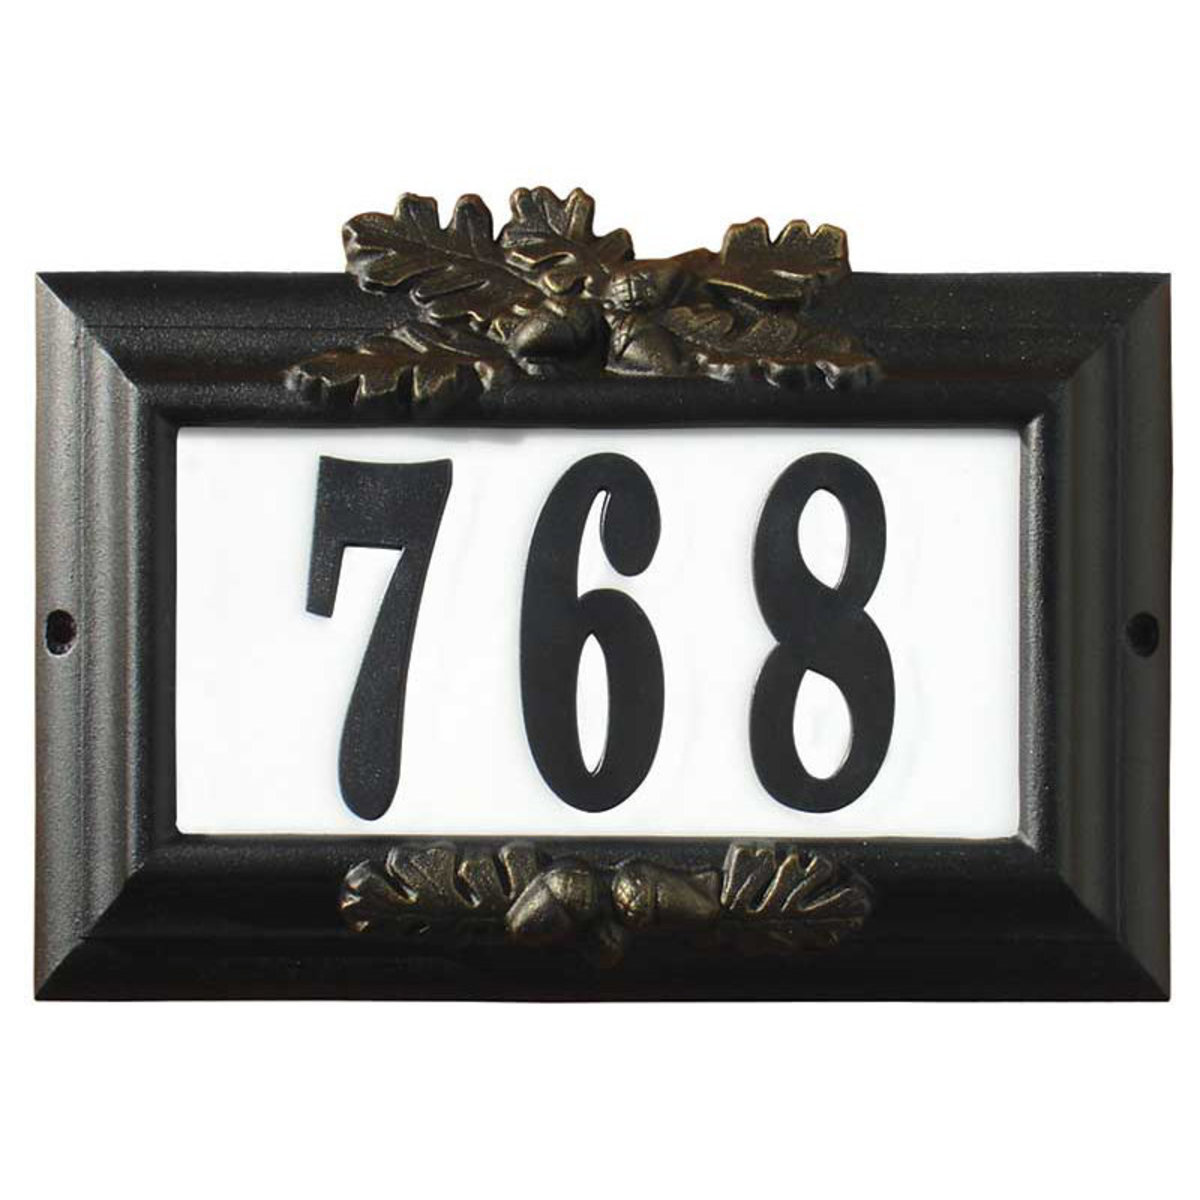 """View a Larger Image of Edgewood """"Misty Oak"""" Lighted Address Plaque in Black with Go"""